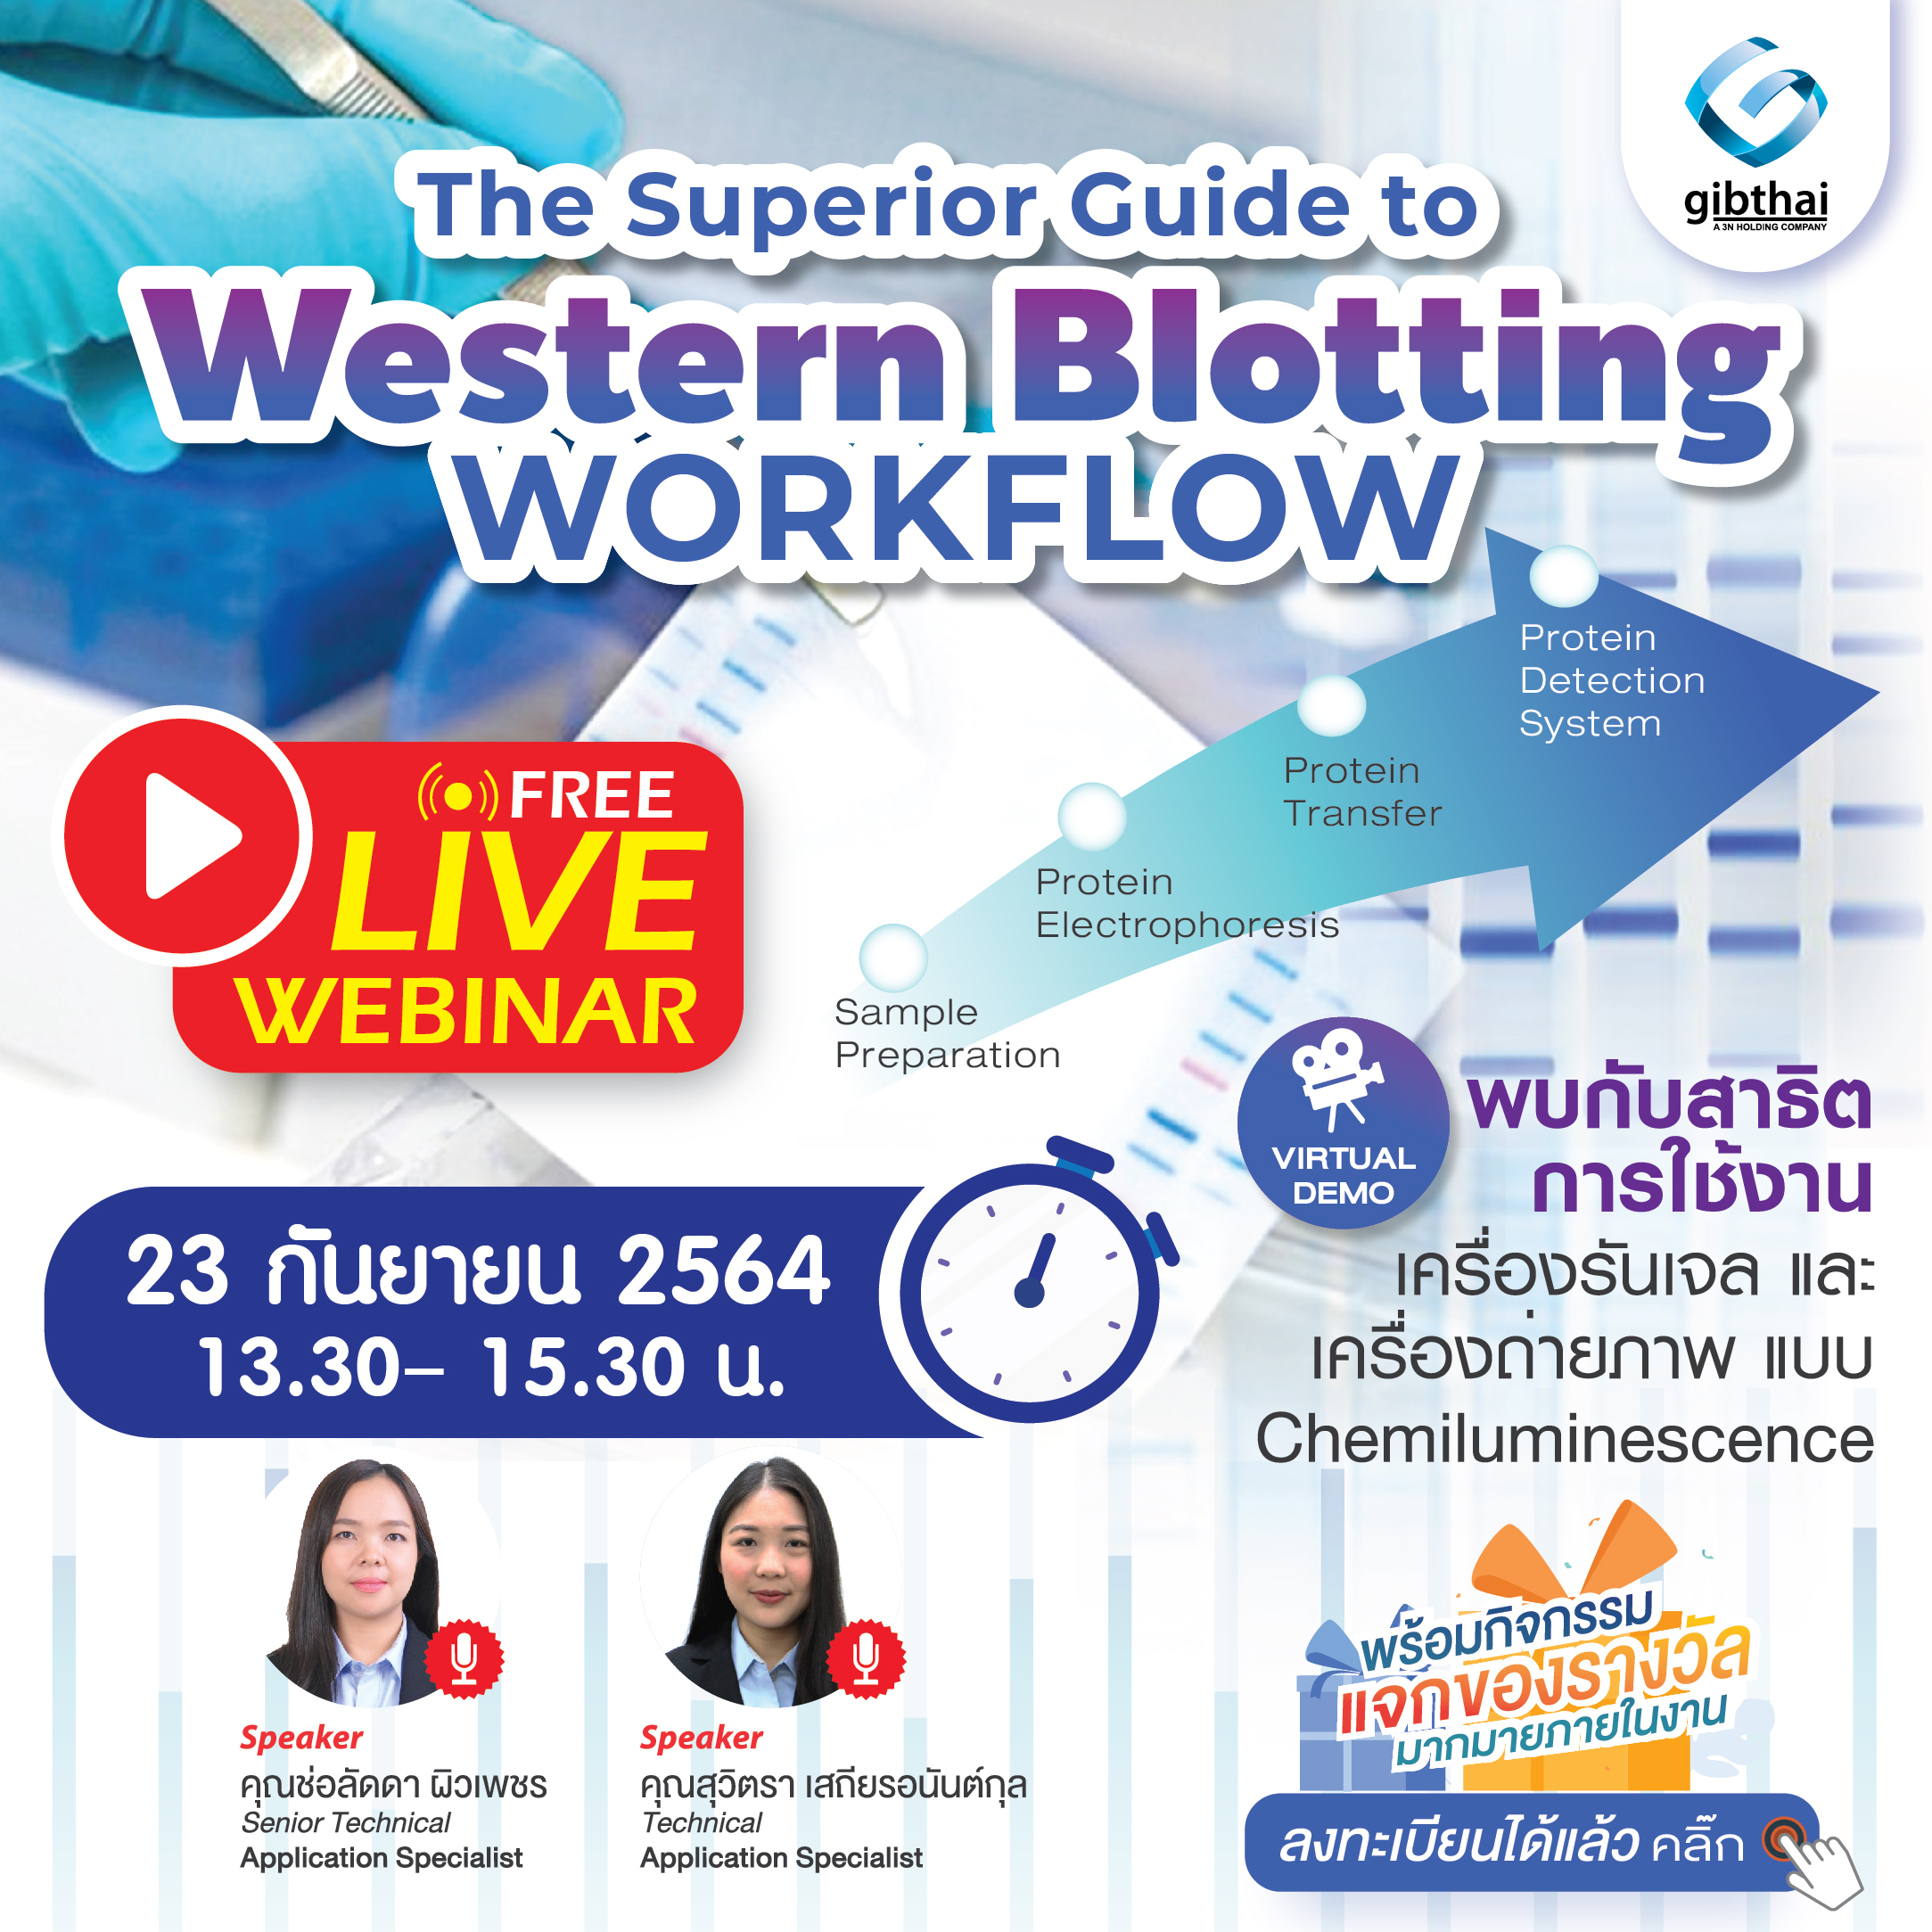 Webinar : The Superior Guide to Western Blotting Workflow